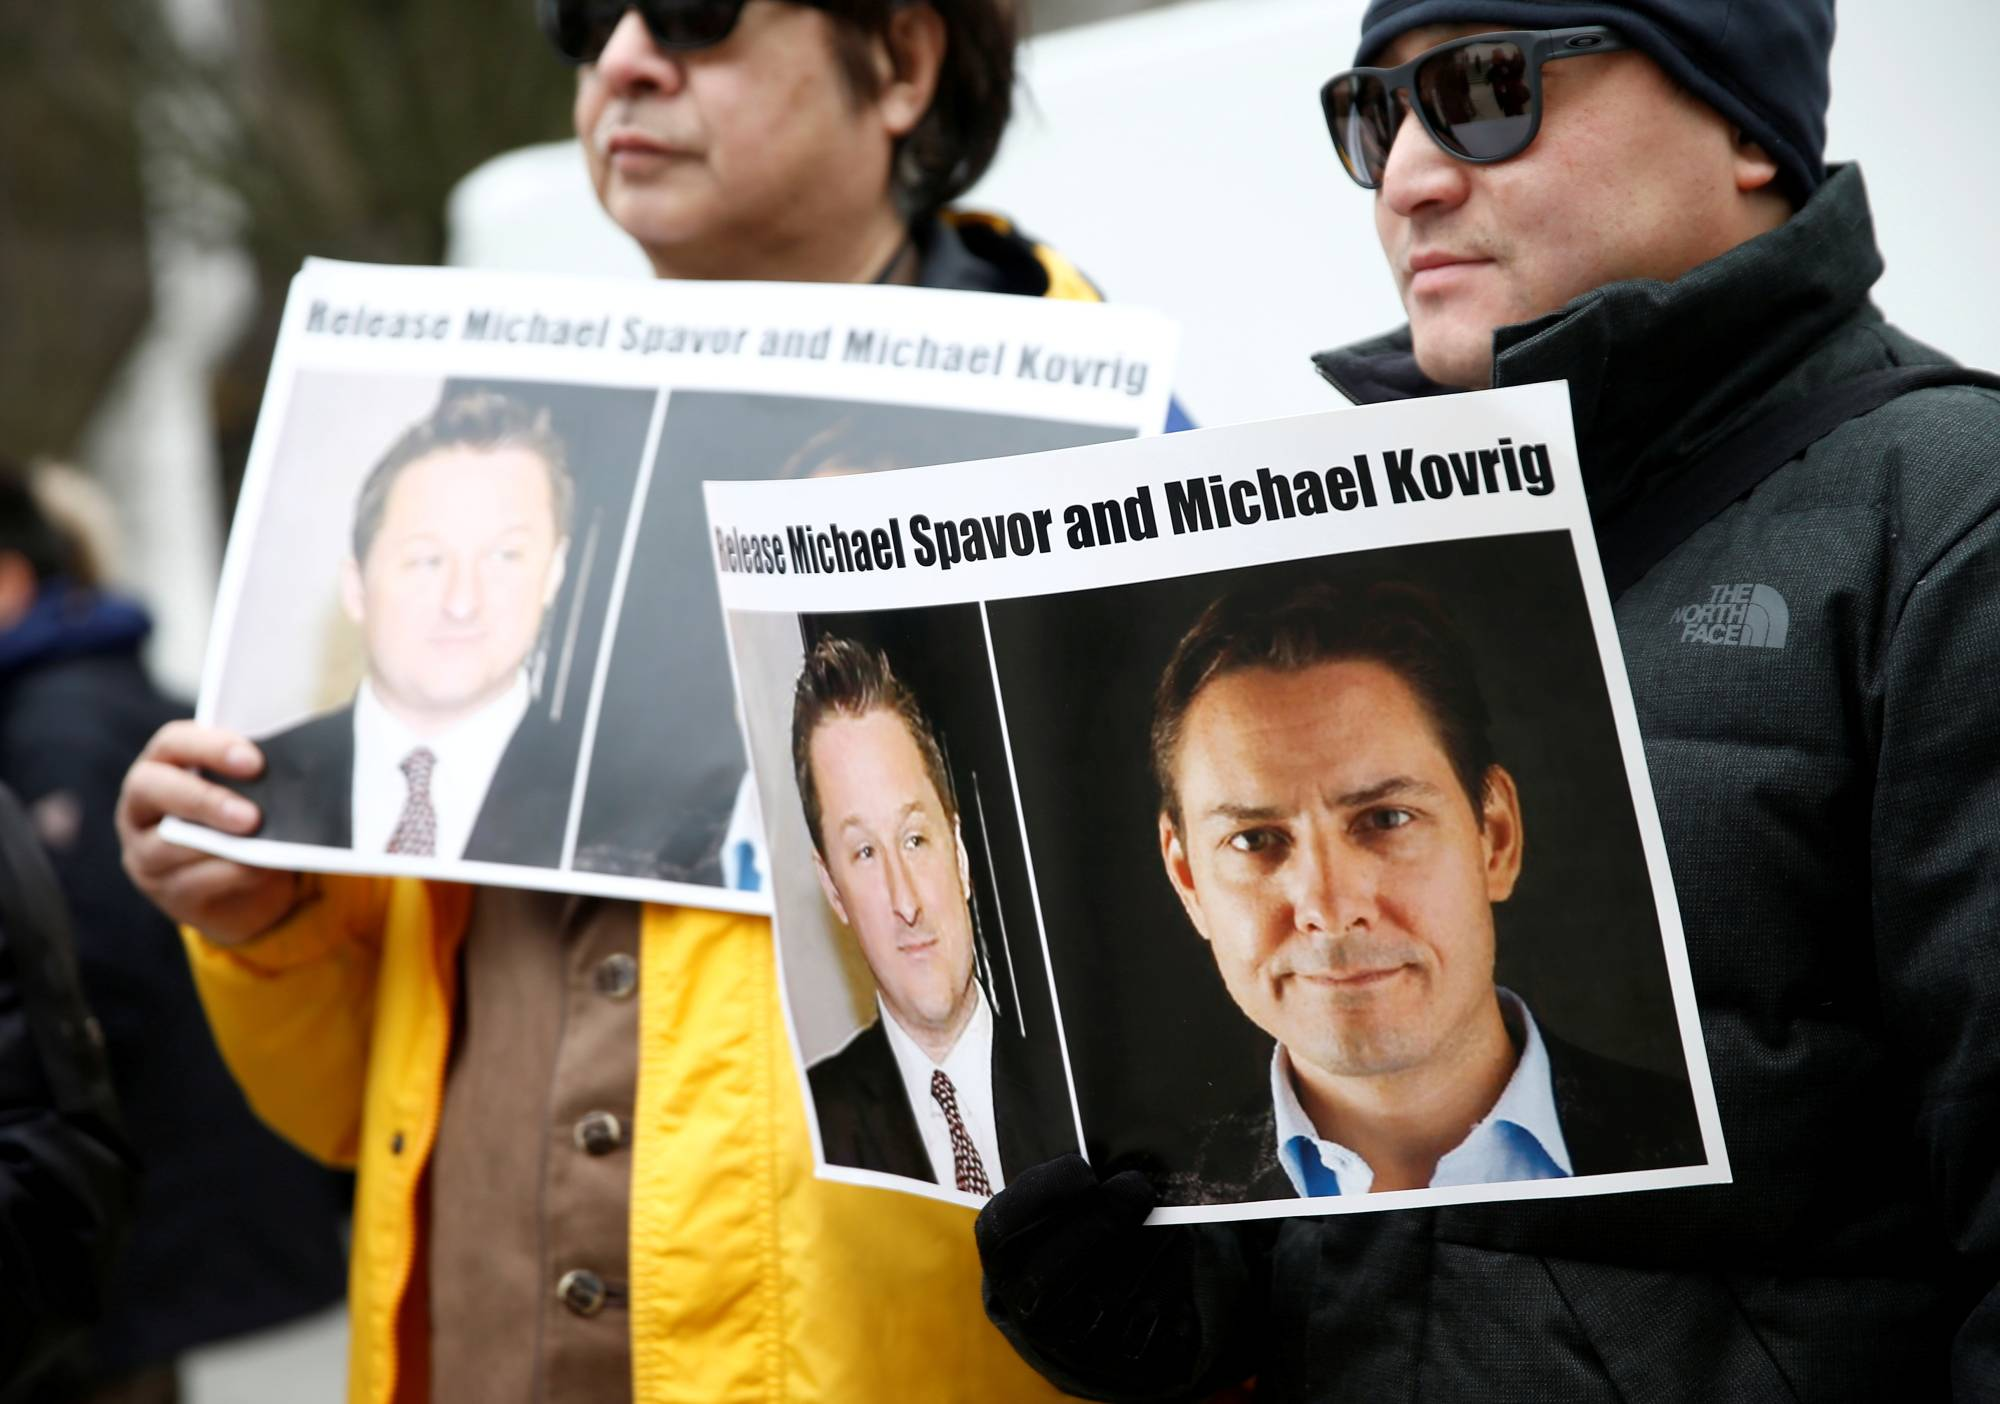 People hold signs calling for China to release Canadian detainees Michael Spavor and Michael Kovrig during an extradition hearing for Huawei Technologies Chief Financial Officer Meng Wanzhou at the British Columbia Supreme Court in Vancouver, Canada, in March last year.   REUTERS